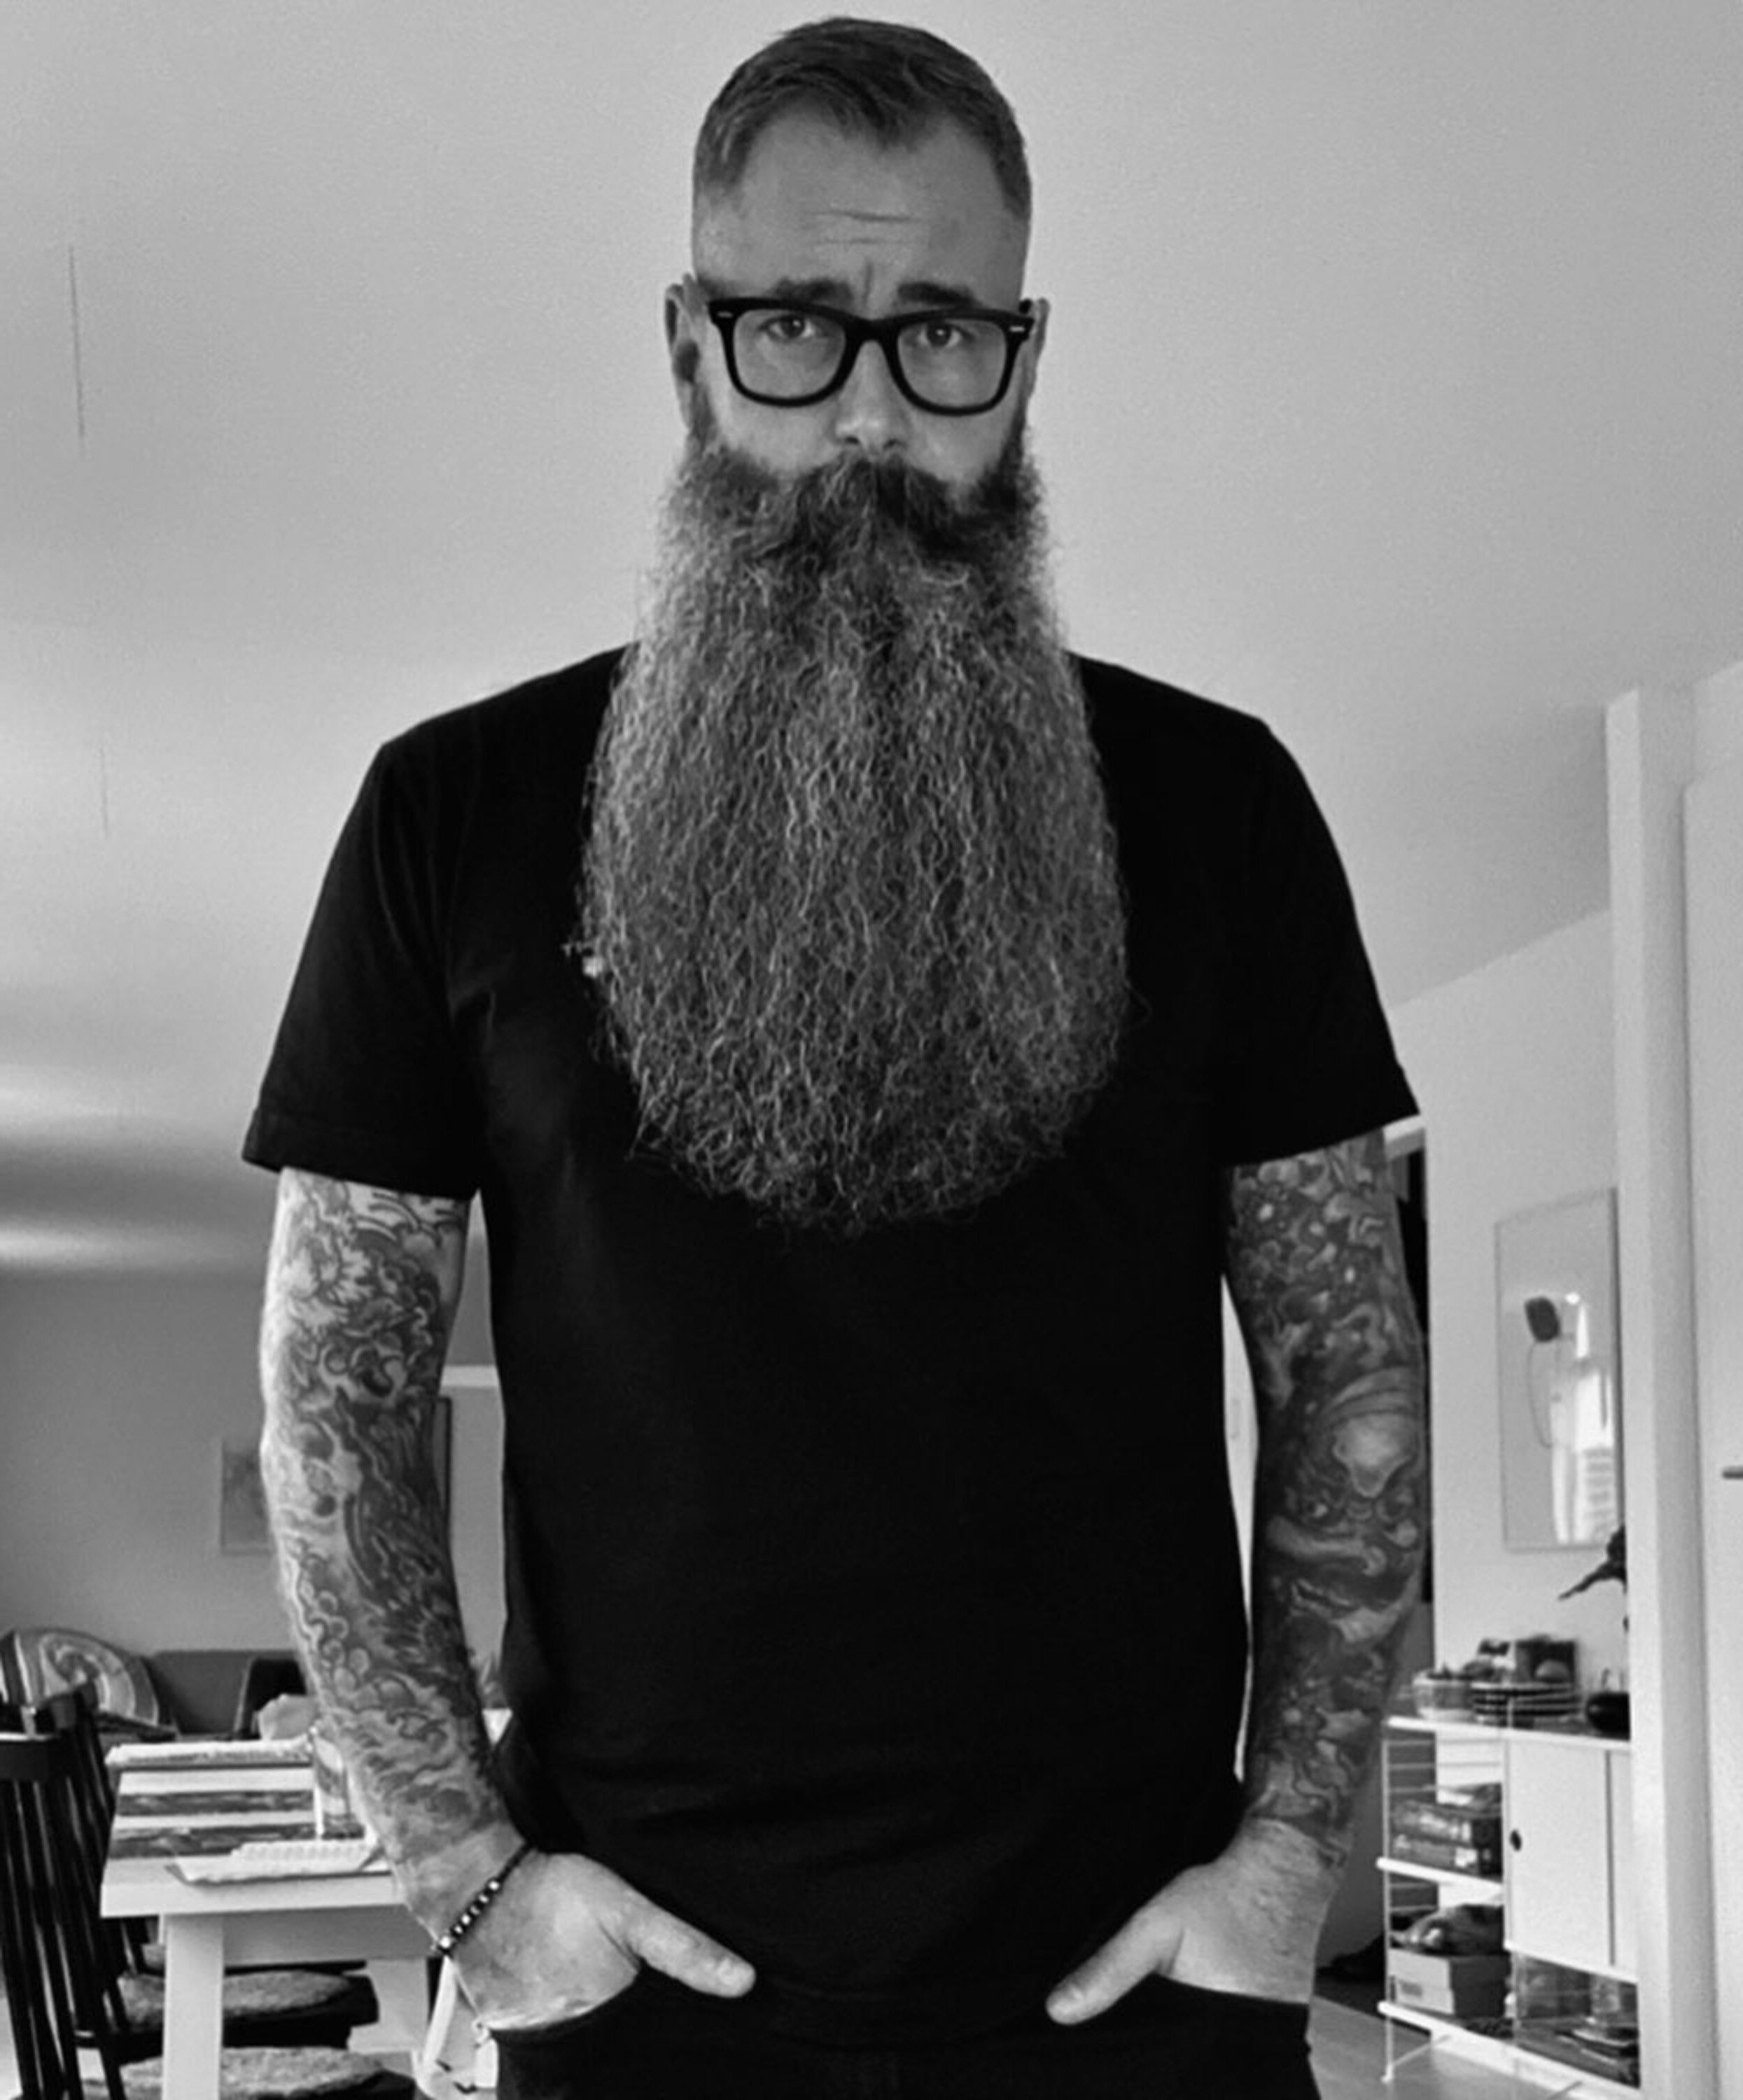 A full beard for sexy men.